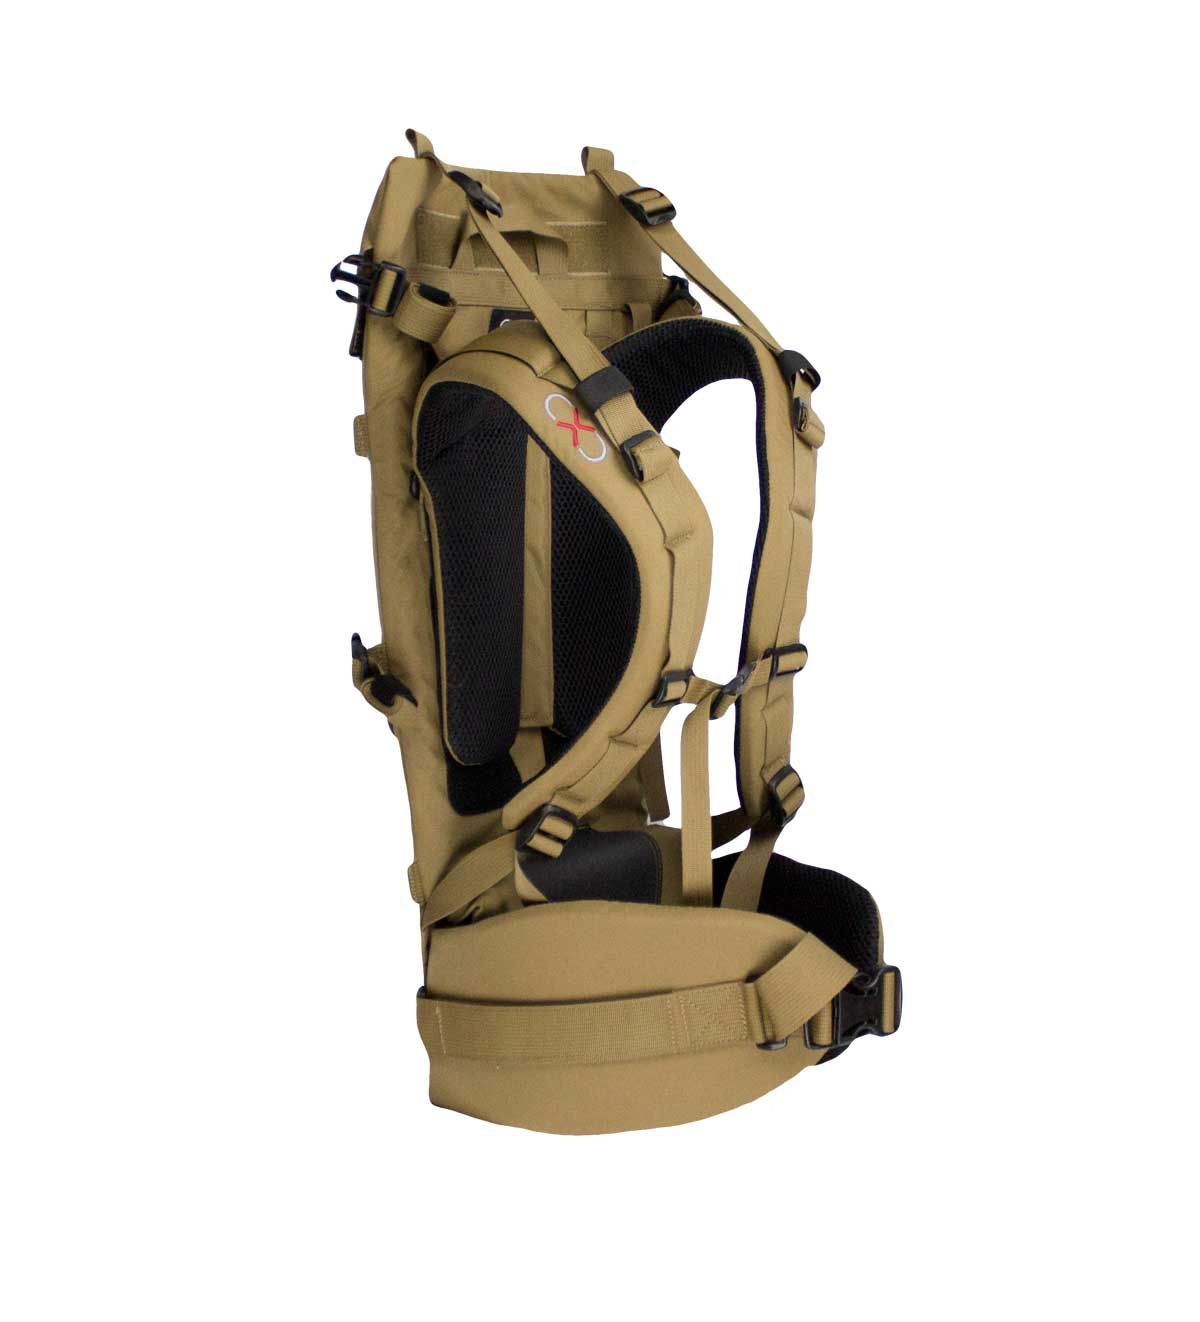 K² Titanium Frame | Tac Packs | Pinterest | Backpacks, Gears and ...